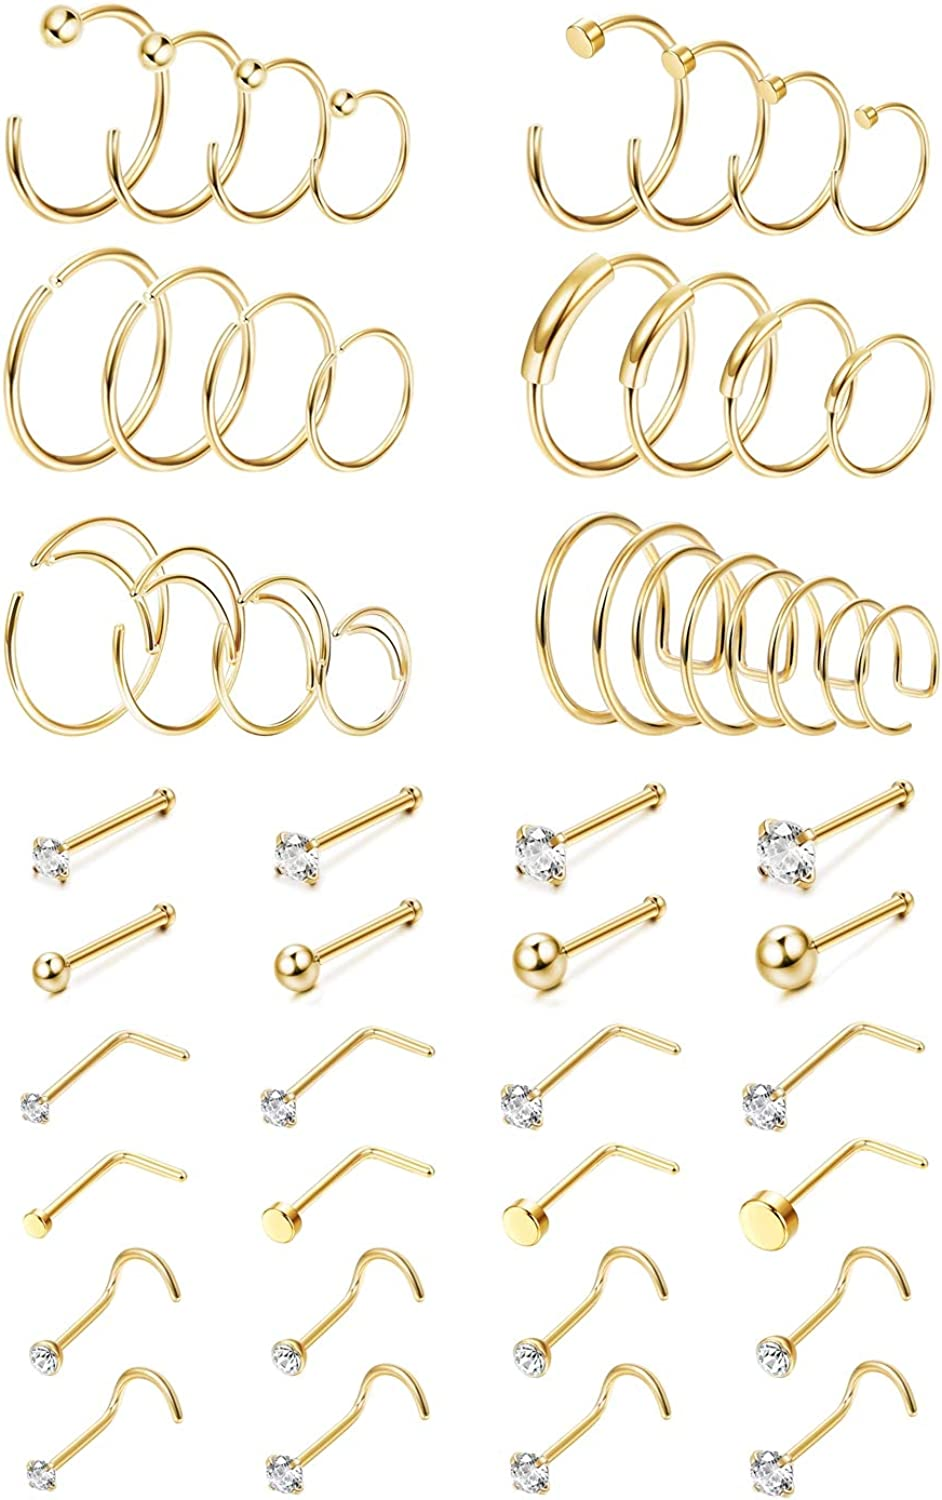 Finrezio 48Pcs 20G Surgical Steel Nose Rings Hoop Studs Cartilage Earrings Body Piercing Jewelry 1.5mm 2mm 2.5mm 3mm Cz Rose Gold Silver Gold Tone 6mm - 12mm Hoops